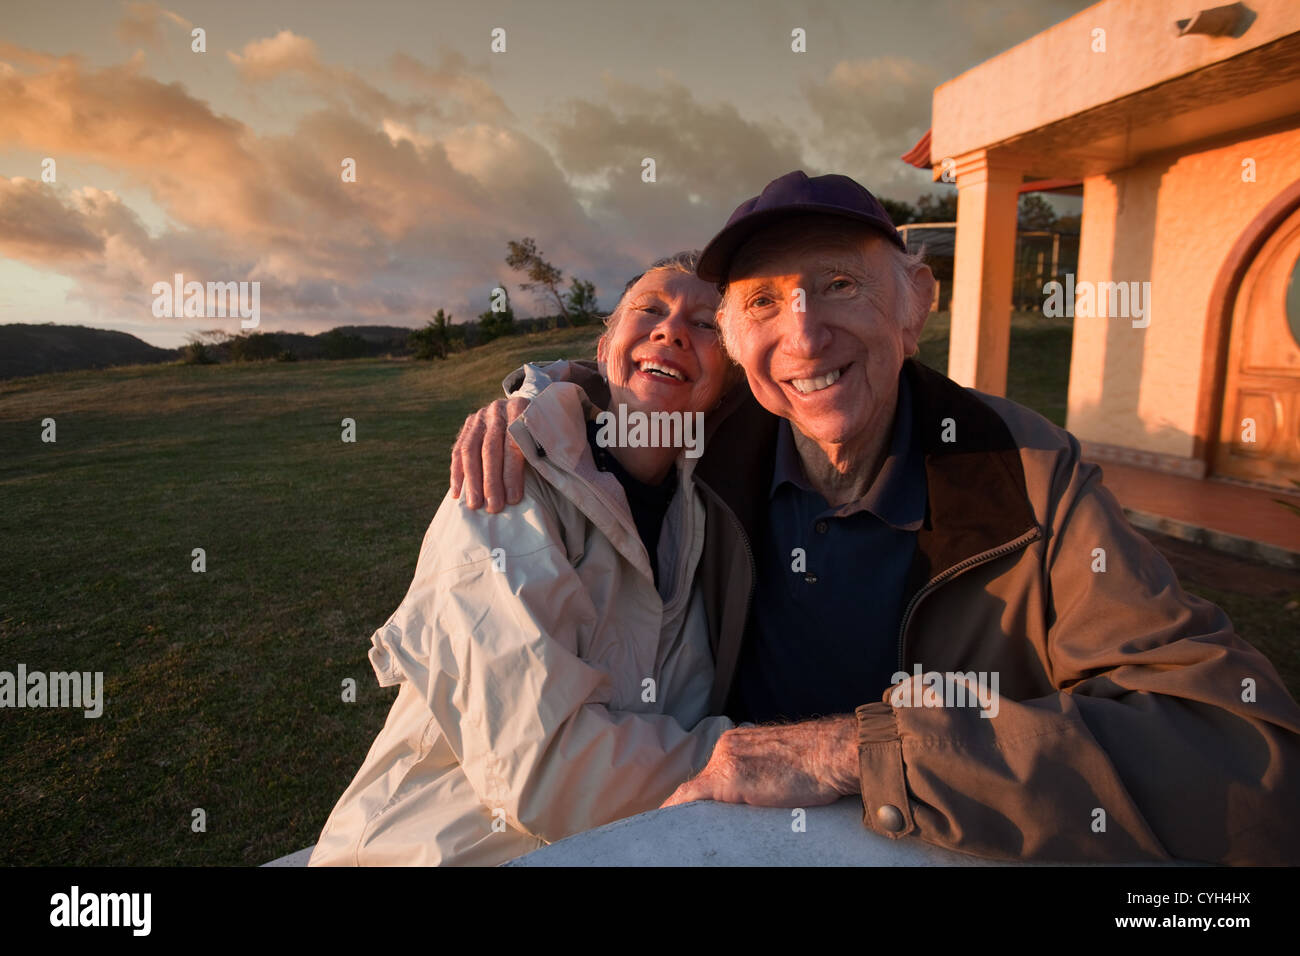 Loving couple smiling at table in mountains Photo Stock